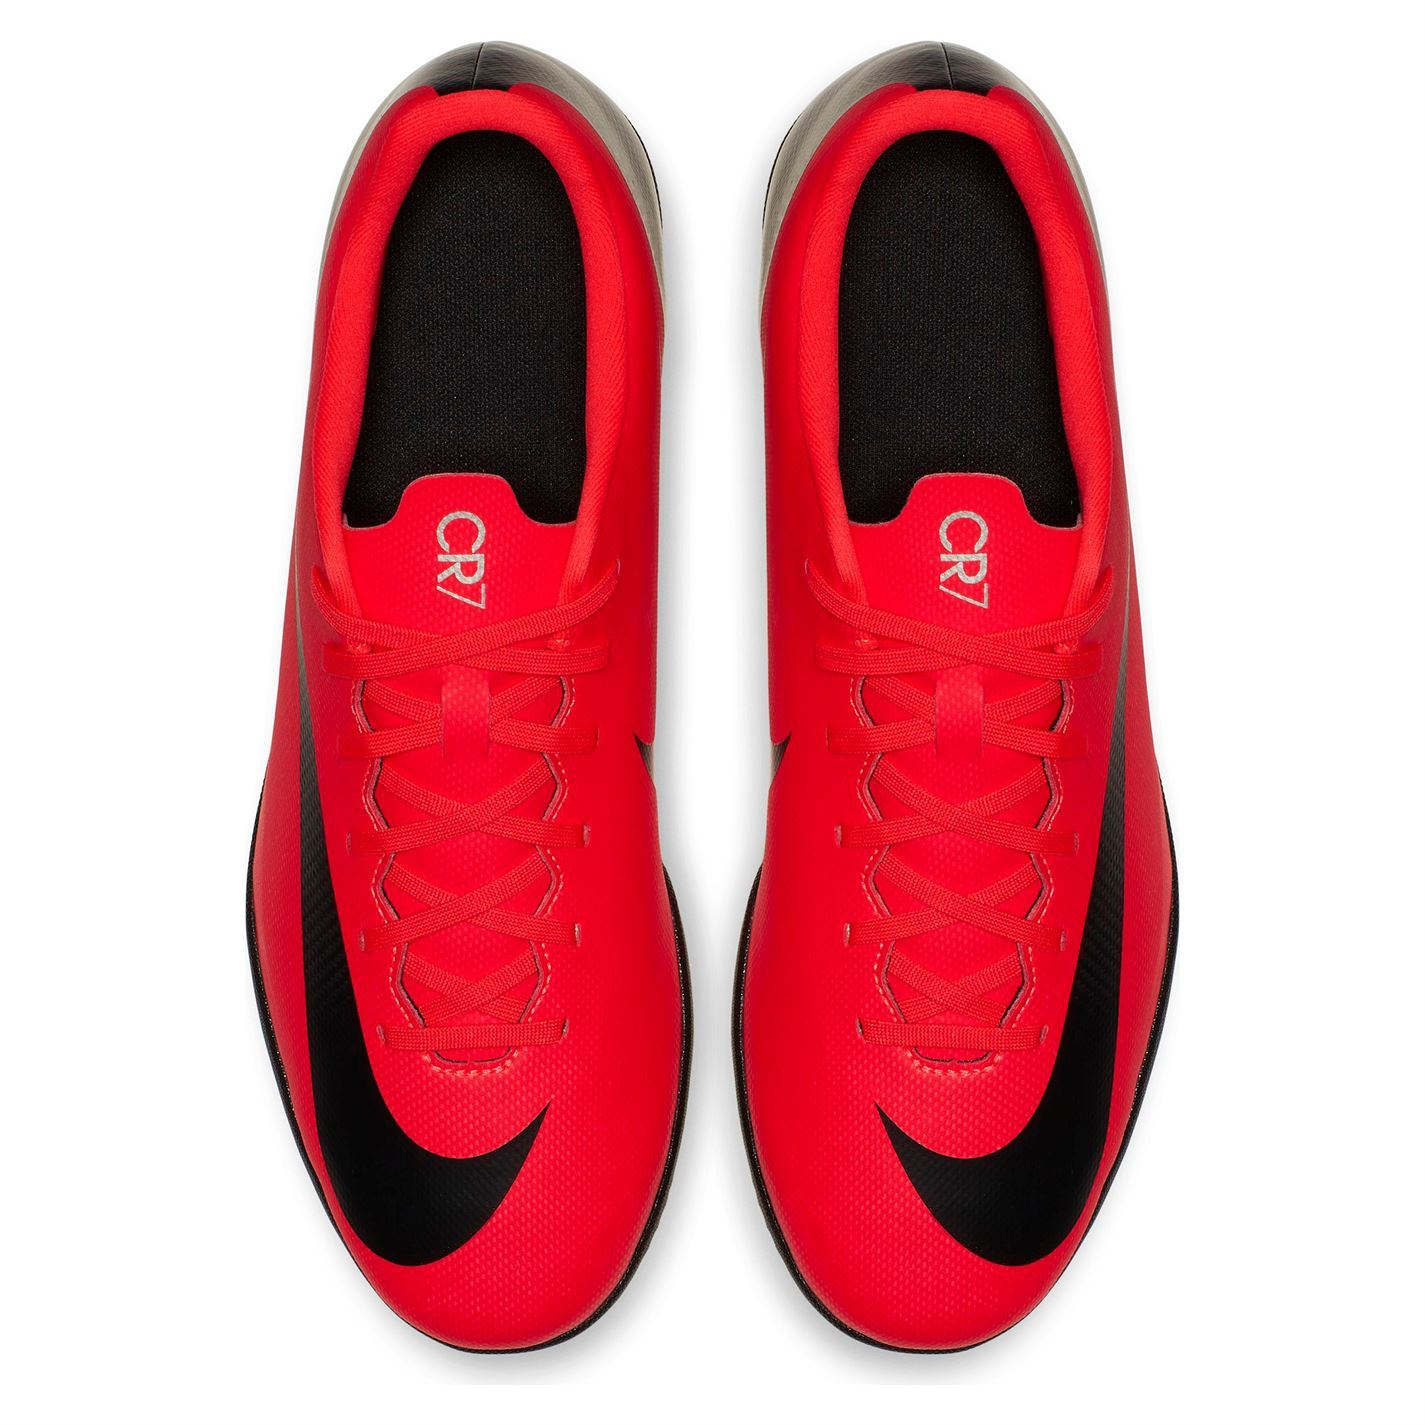 948670e4f461b Nike Mercurial Vapor Club CR7 Indoor Football Trainers Mens Red Soccer Shoes